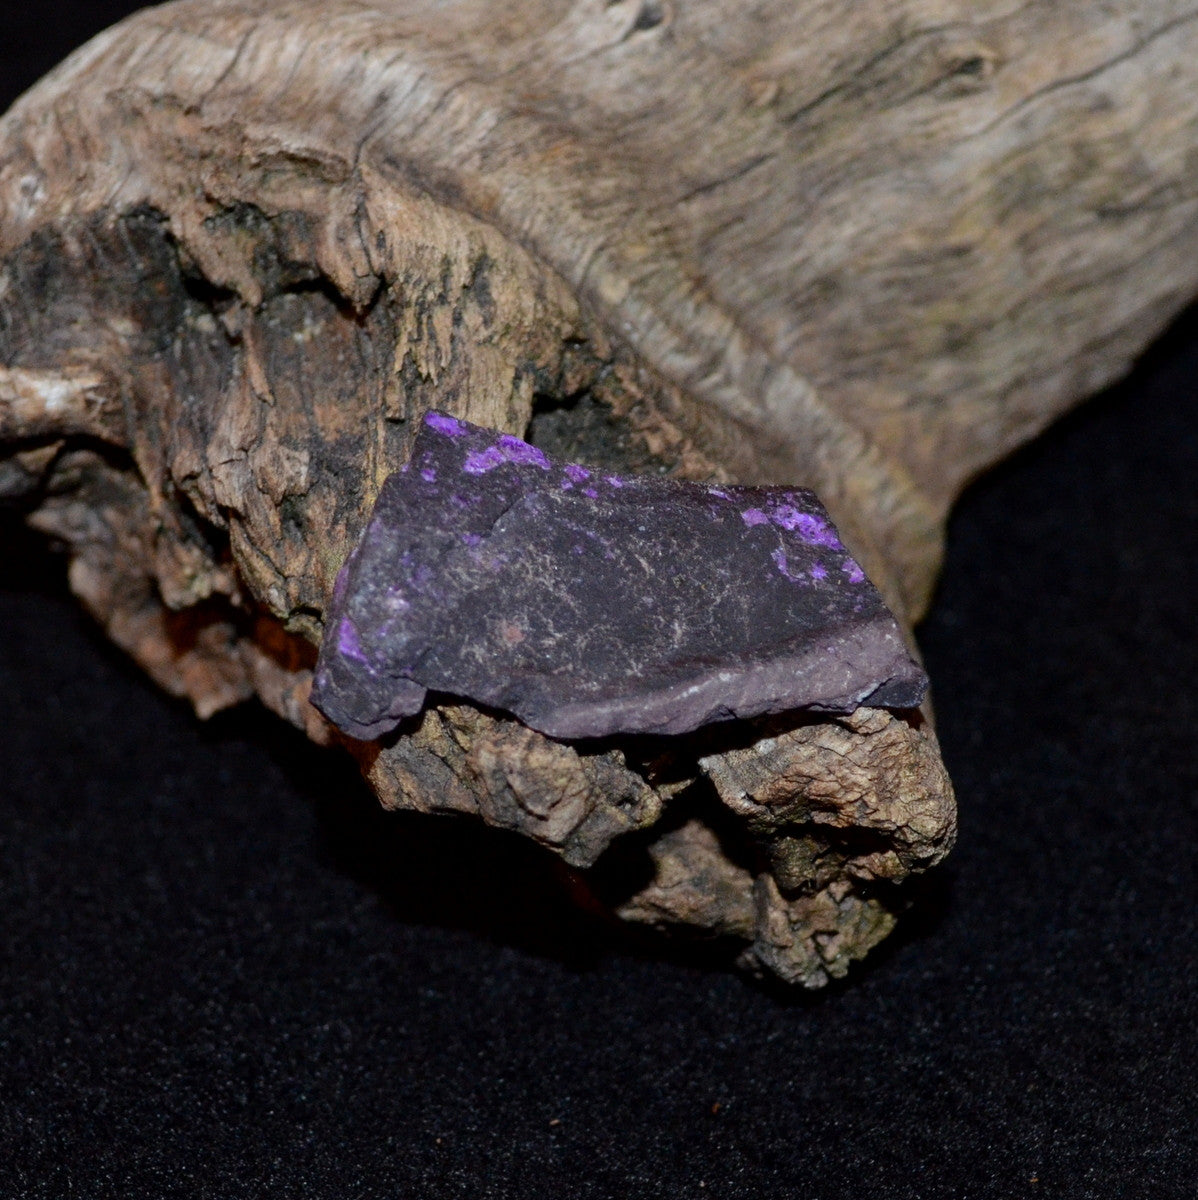 Sugilite Natural Specimen - Devine healing Universal Love - Shop Sugilite Now at Illiom Crystals - Now with Afterpay